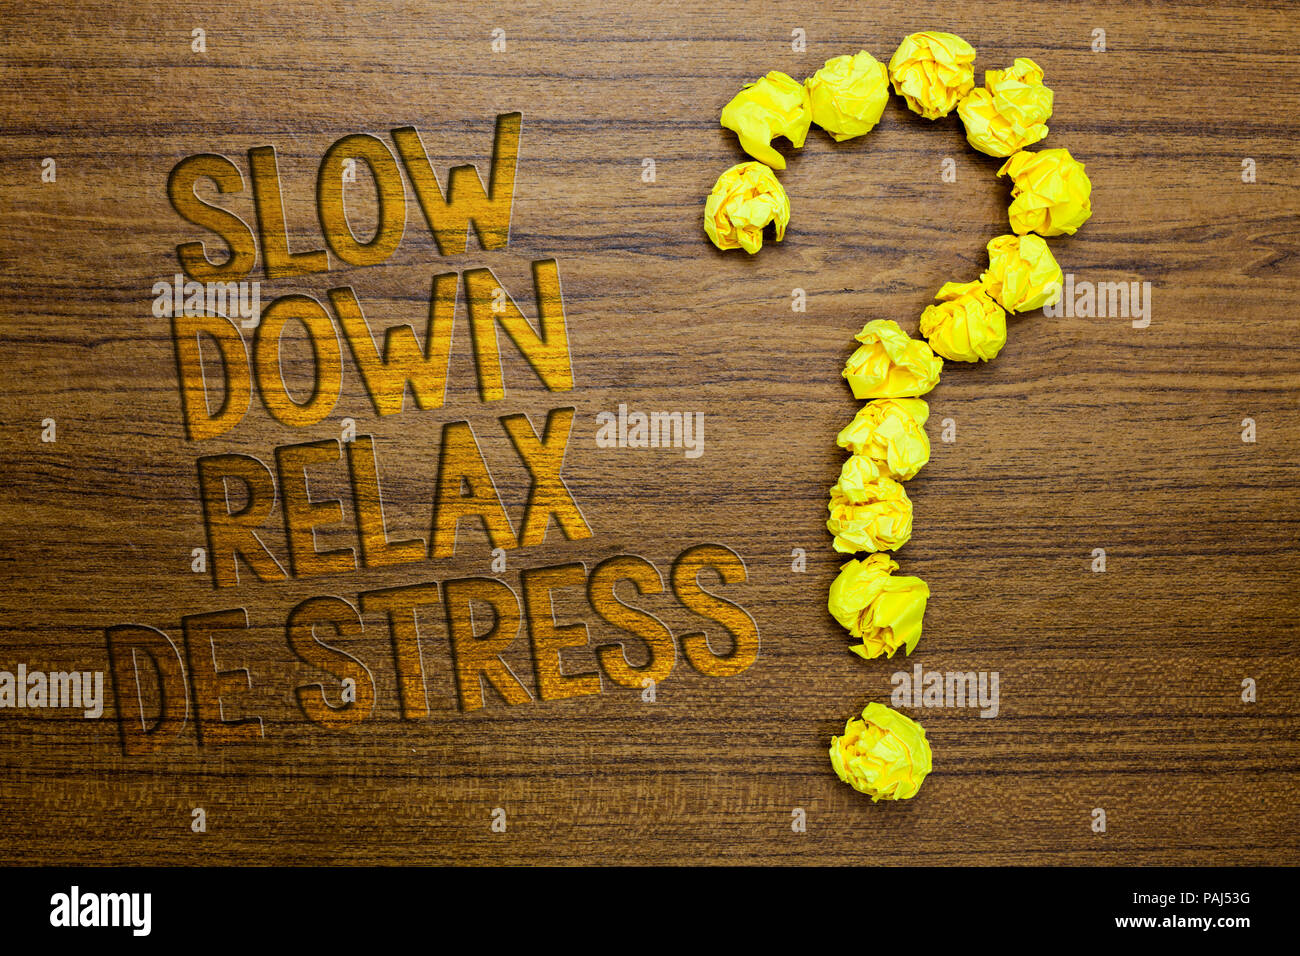 Word writing text Slow Down Relax De Stress. Business concept for Have a break reduce stress levels rest calm Wooden floor with some letters yellow pa - Stock Image